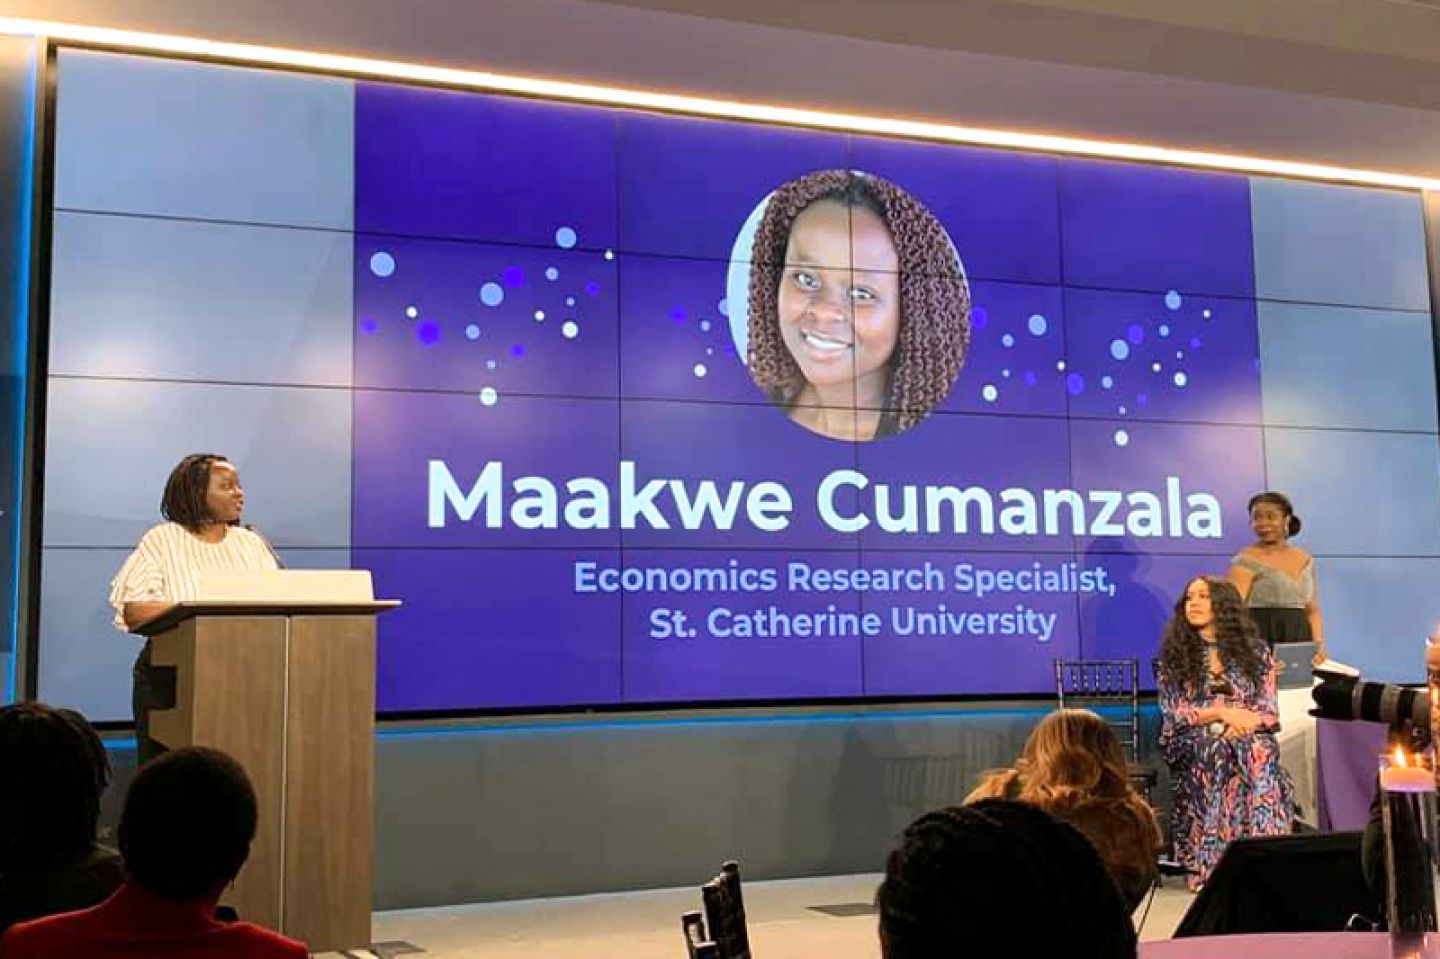 St. Kate's student Maakwe Cumanzala speaking at the 2020 Sadie TM Conference for Economics